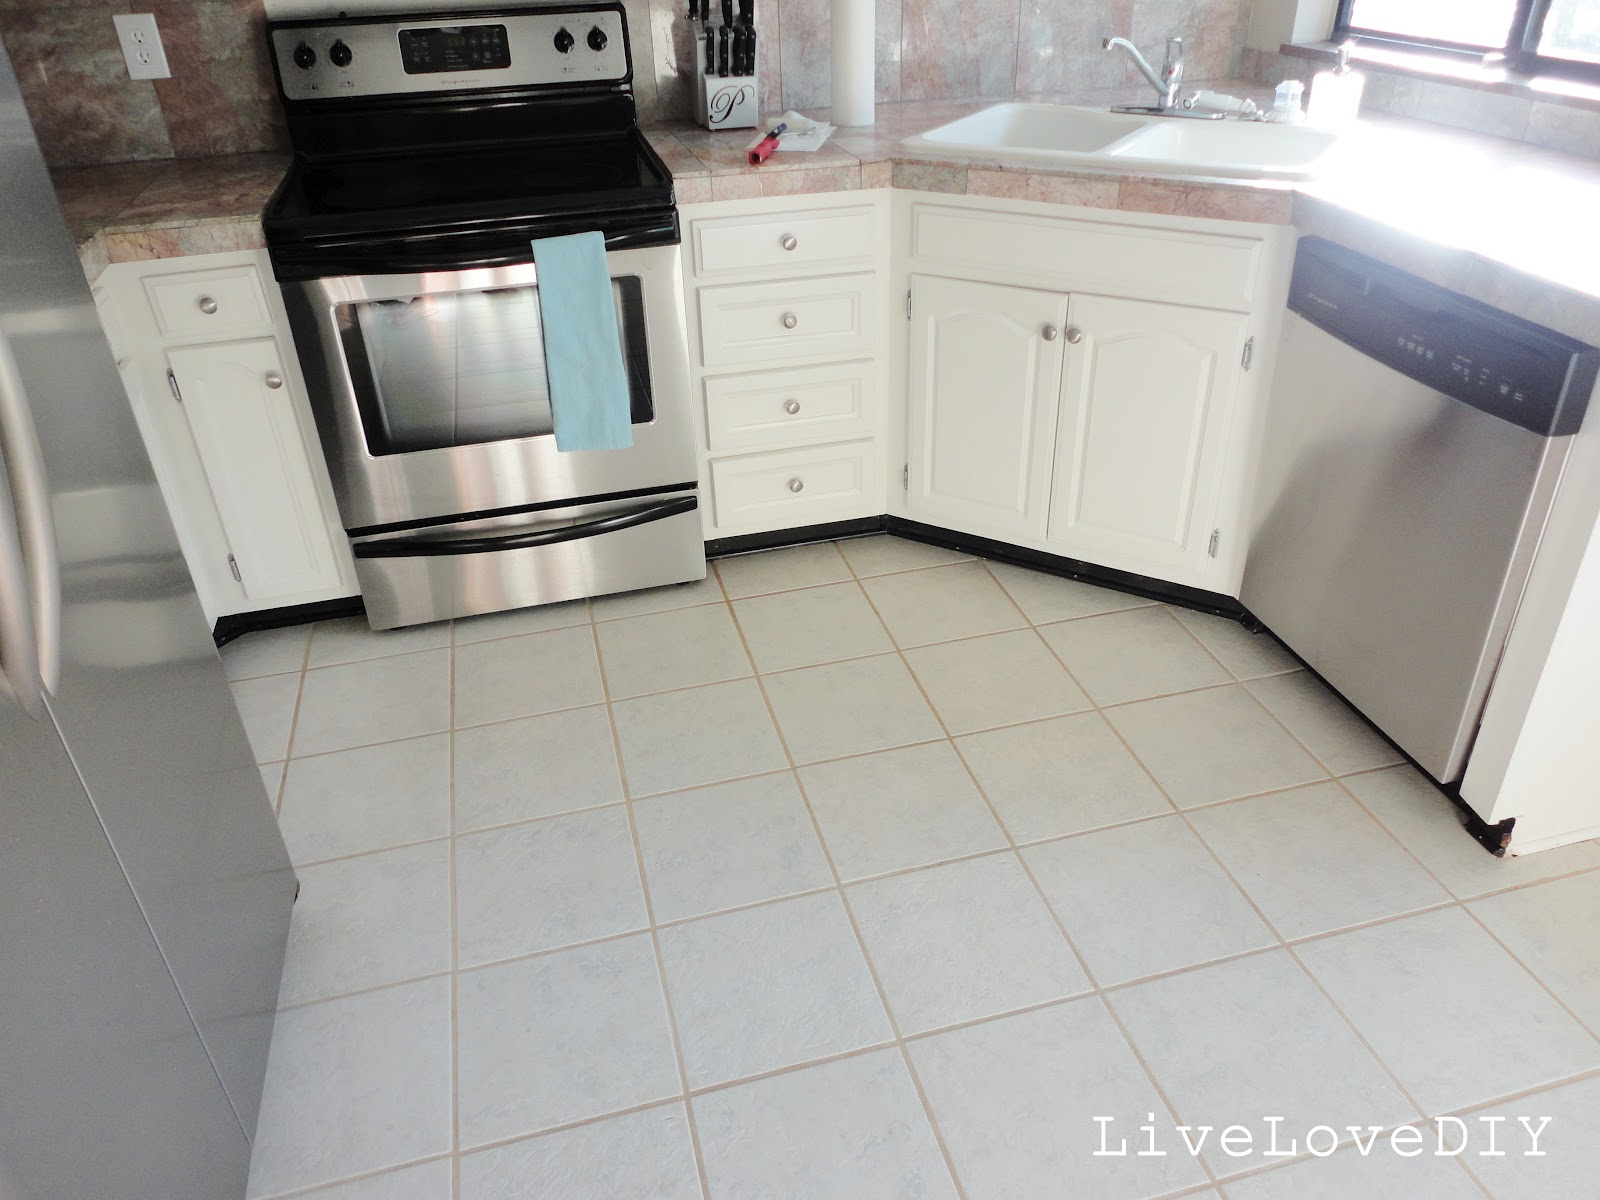 Floor Tile Kitchen Livelovediy How To Restore Dirty Tile Grout